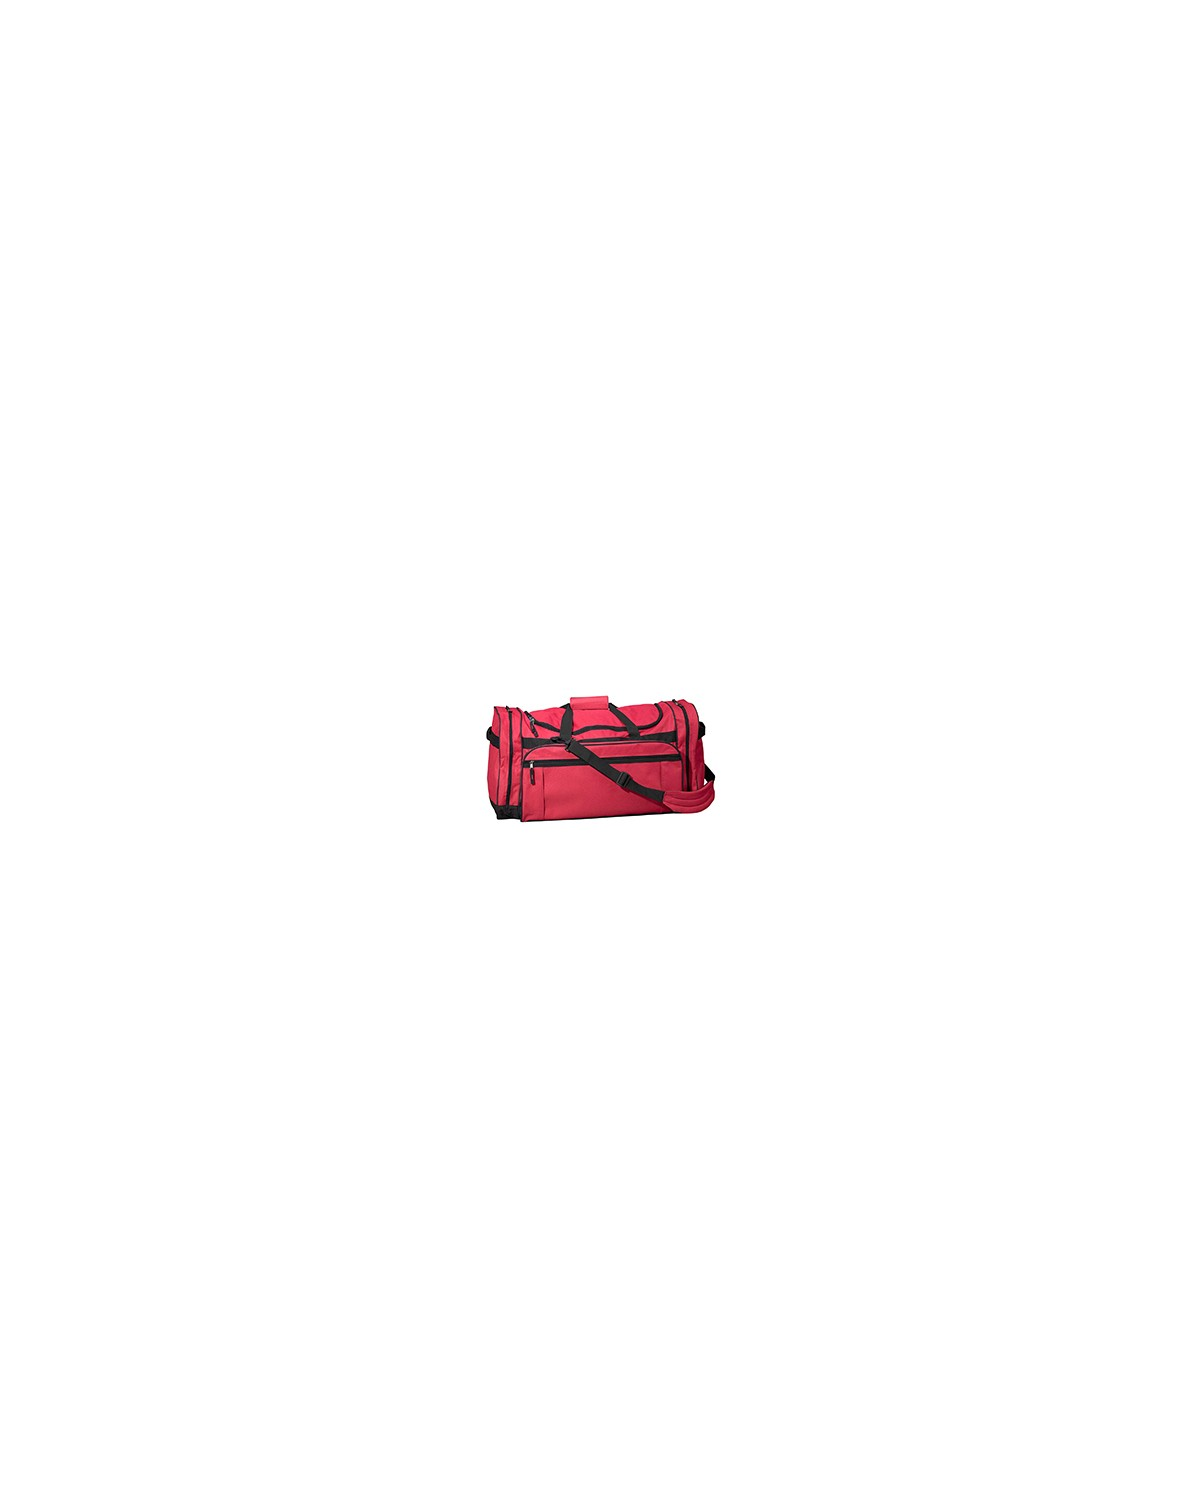 3906 Liberty Bags RED